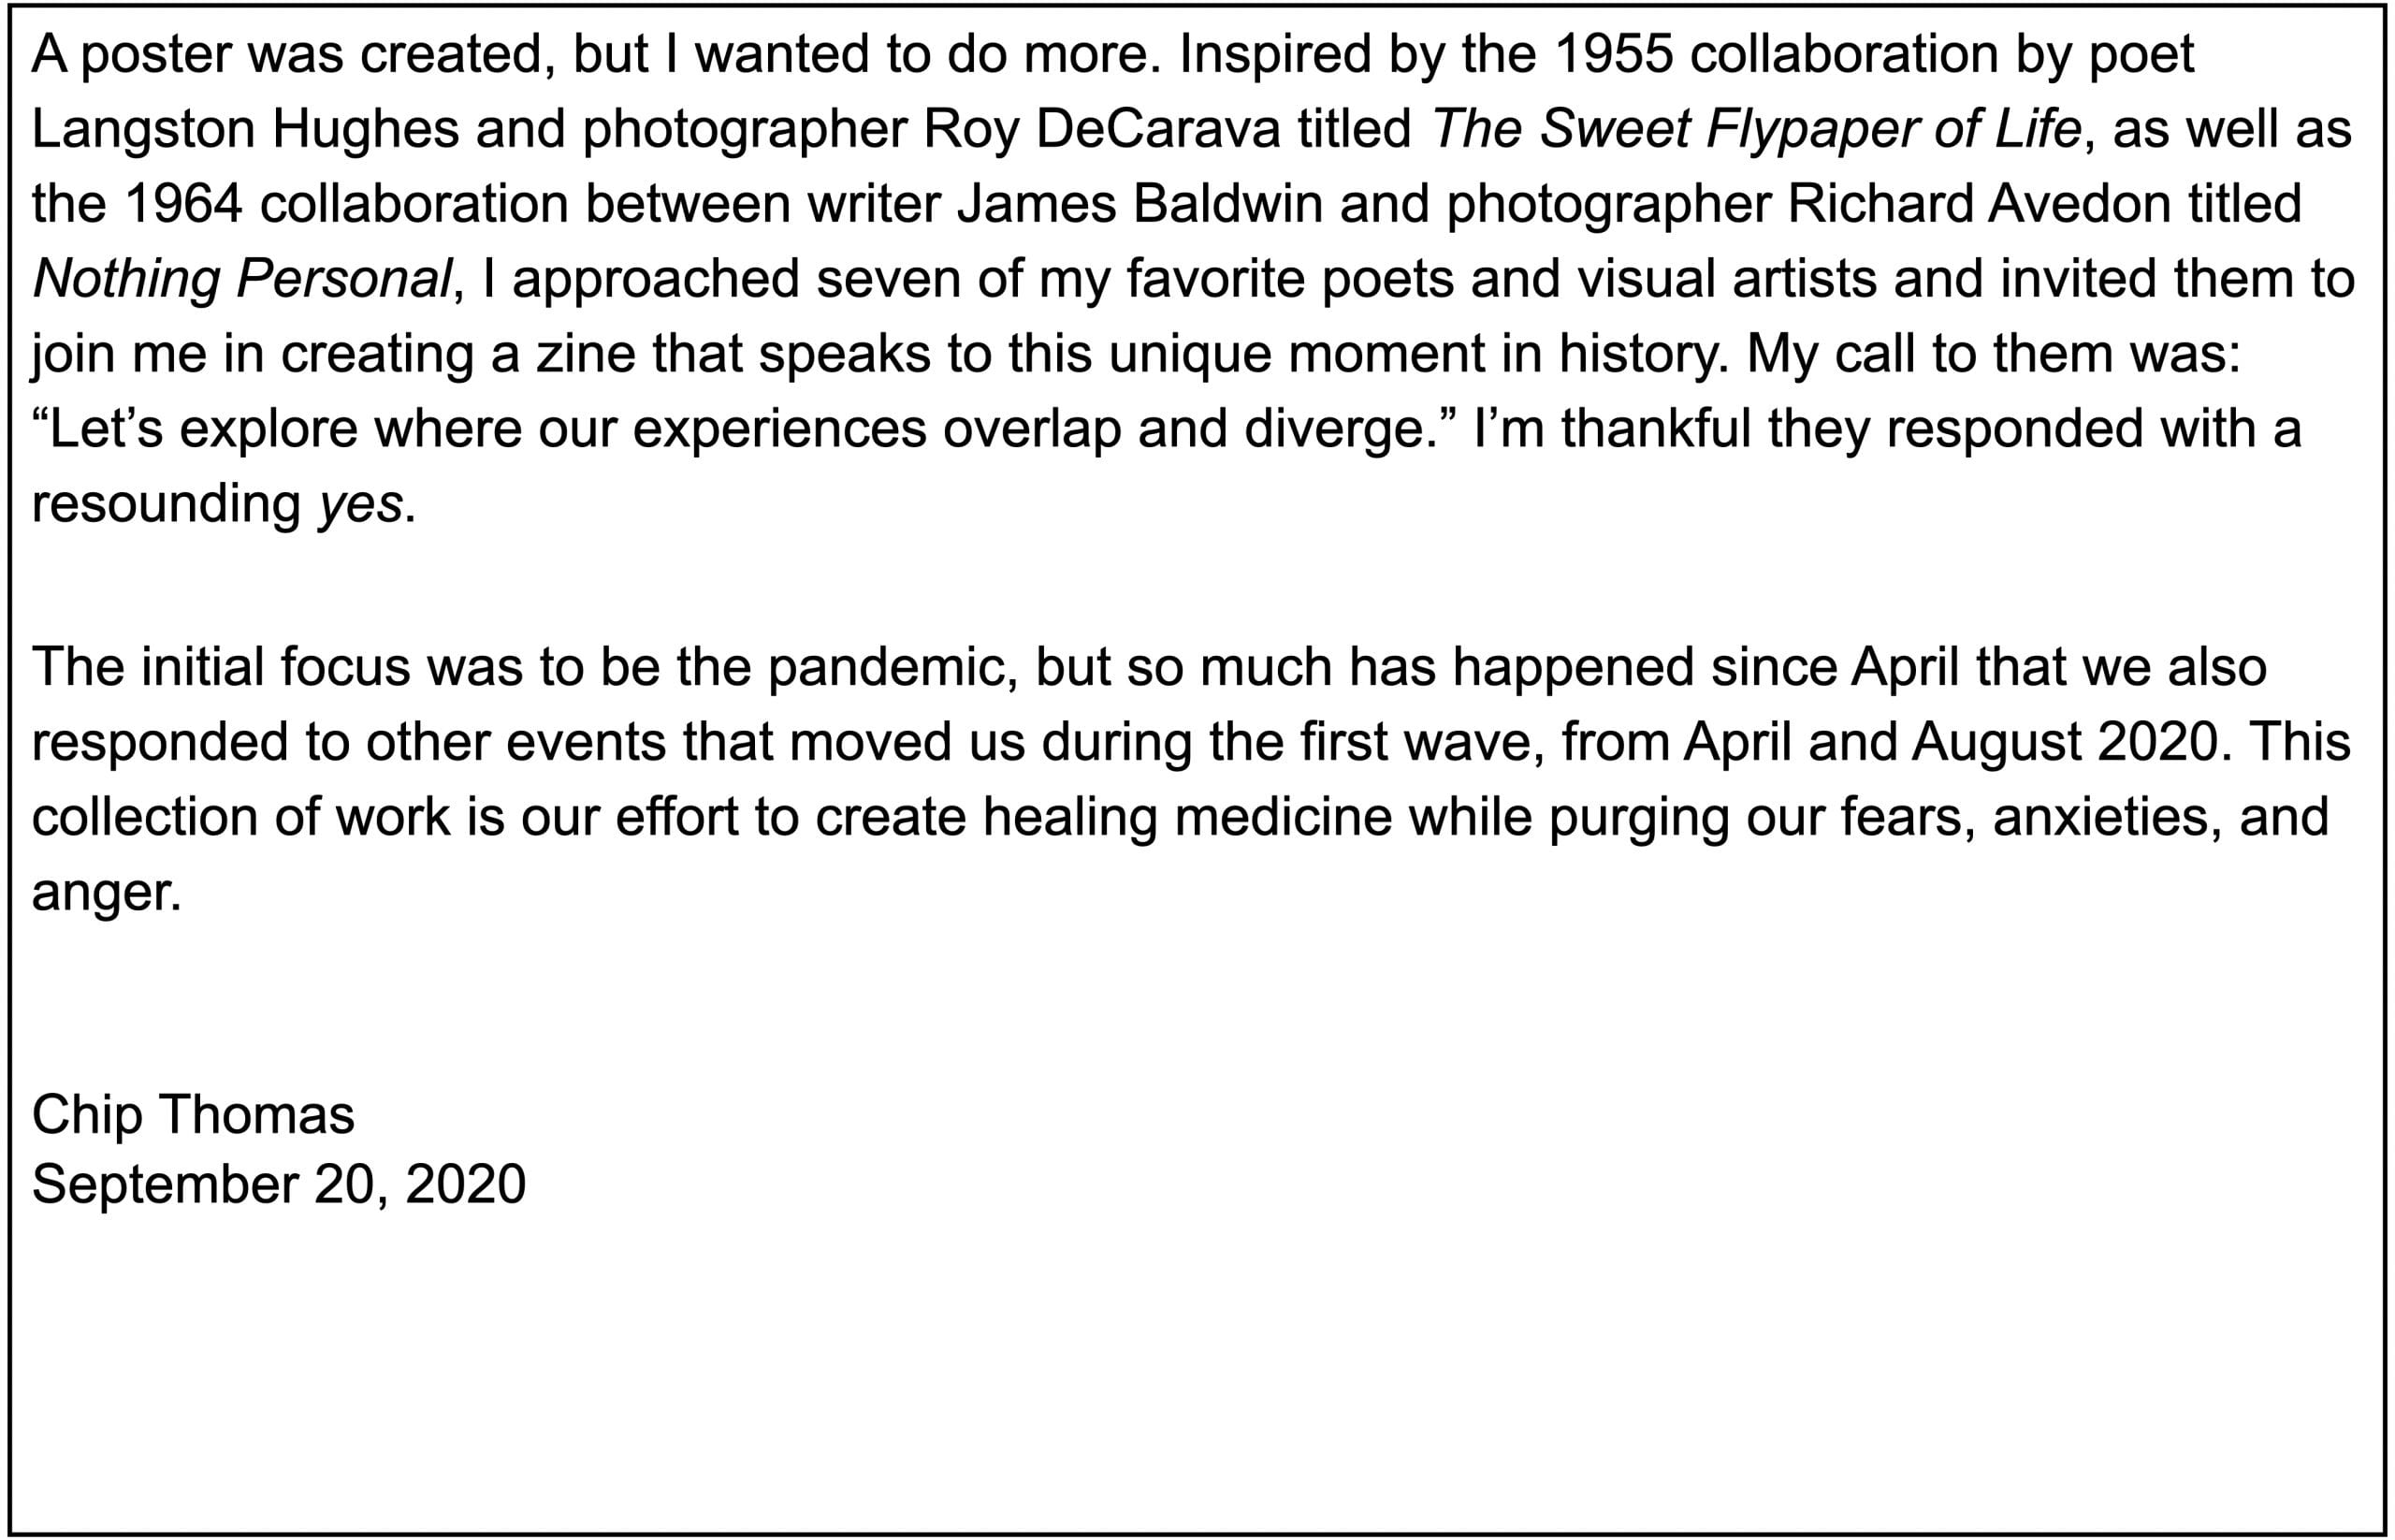 Introductory letter by Chip Thomas, editor, cont.